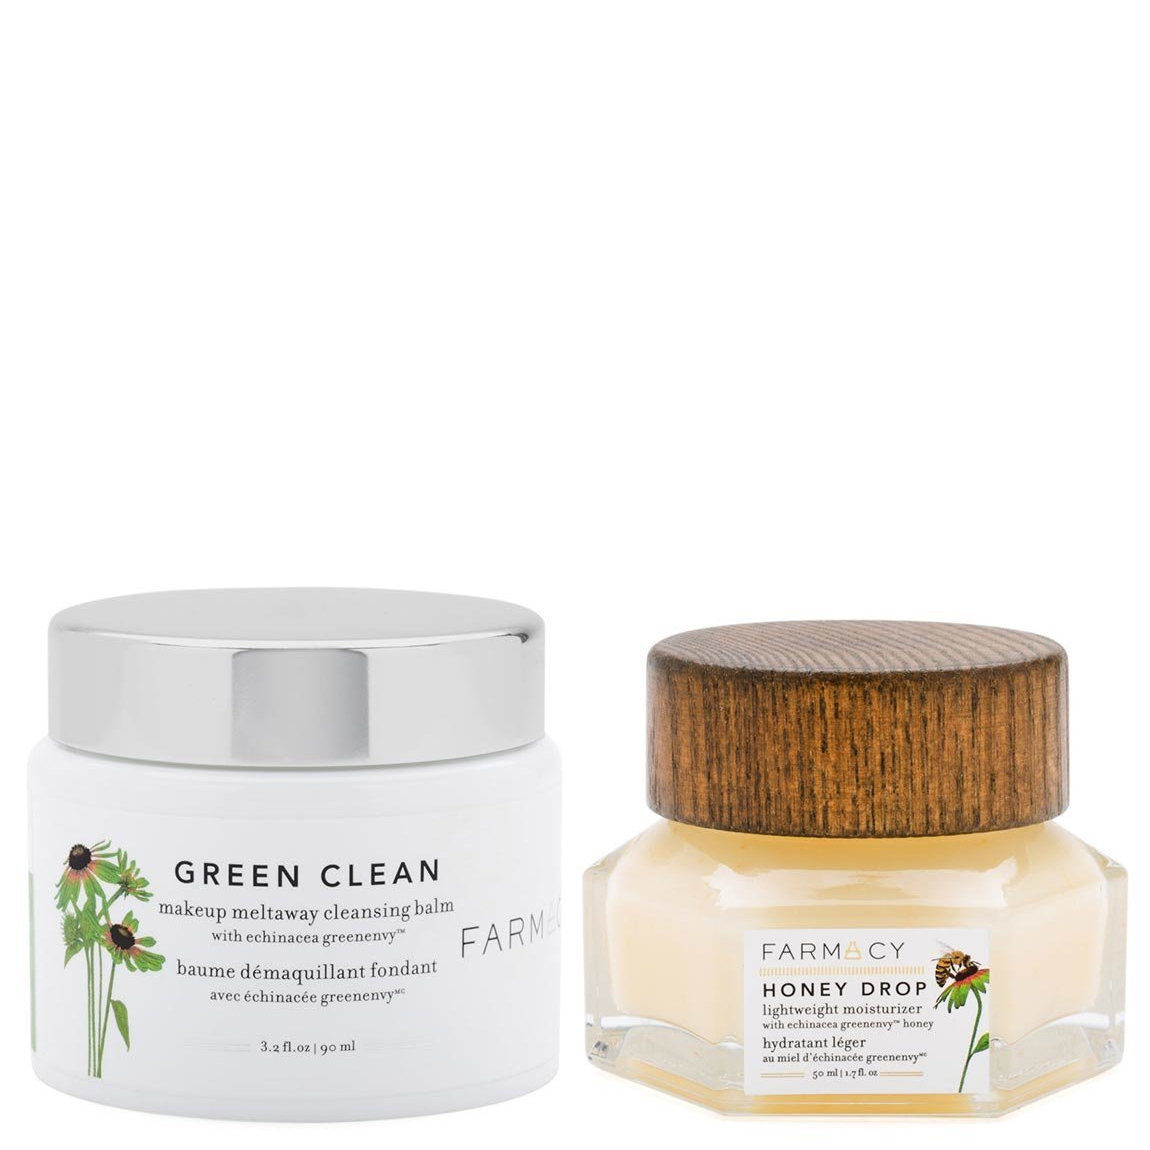 Farmacy Green Clean Makeup Meltaway Cleansing Balm & Honey Drop Lightweight Moisturizer Bundle product swatch.